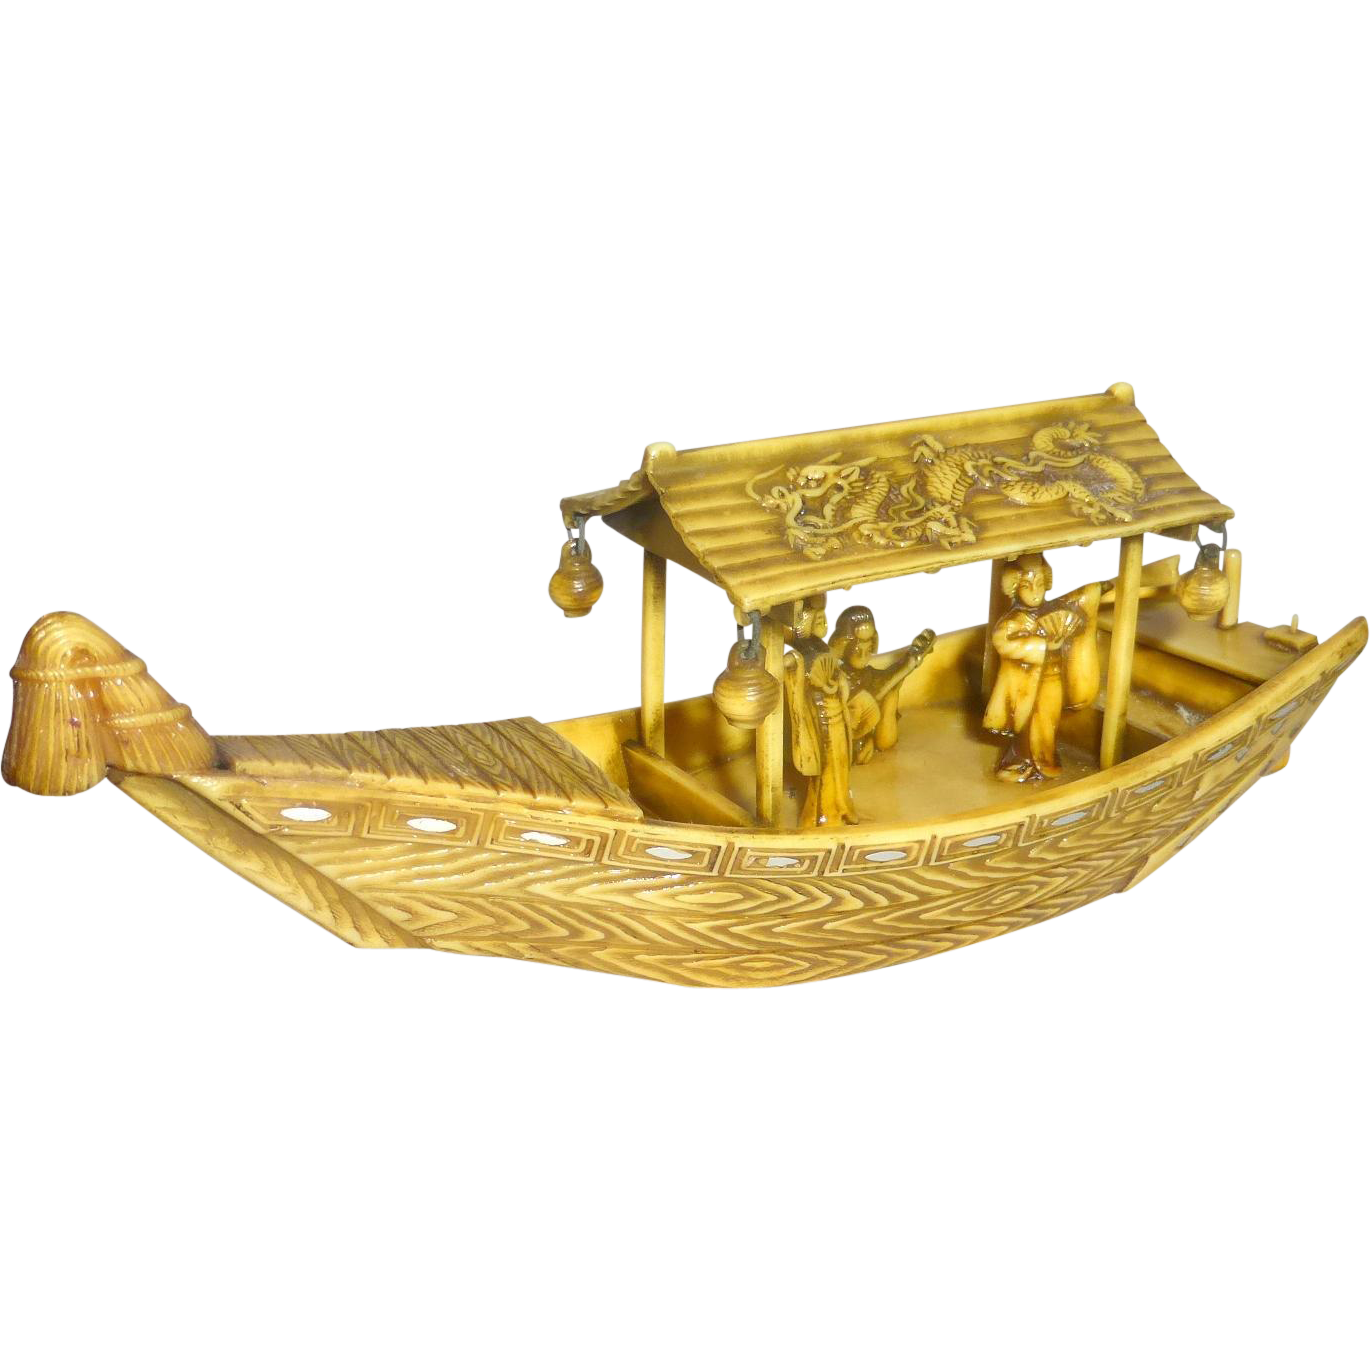 Vintage 1920's Celluloid Dragon Pleasure Boat Diorama with Singing Girls